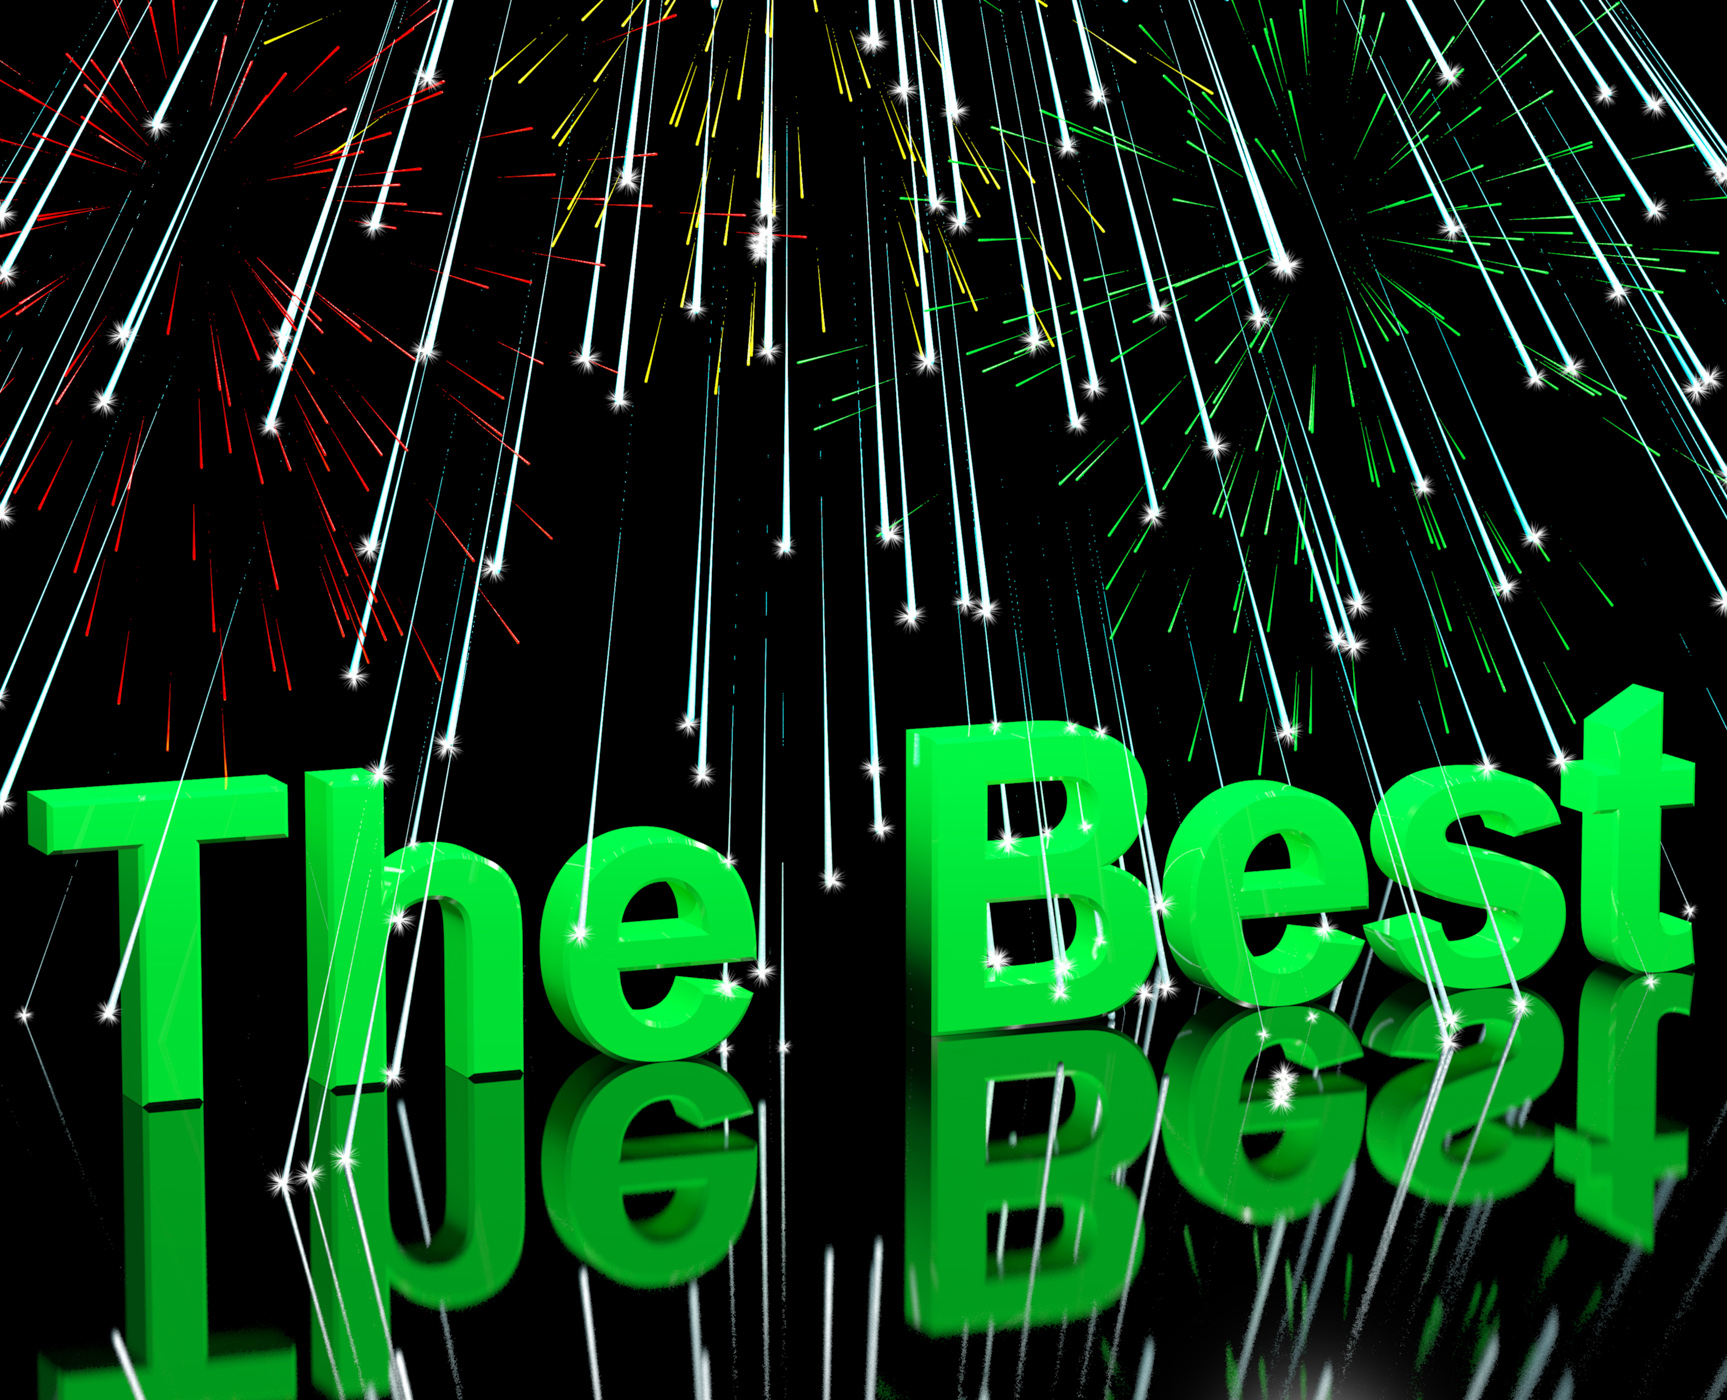 The best words with fireworks showing top quality and acheivement photo